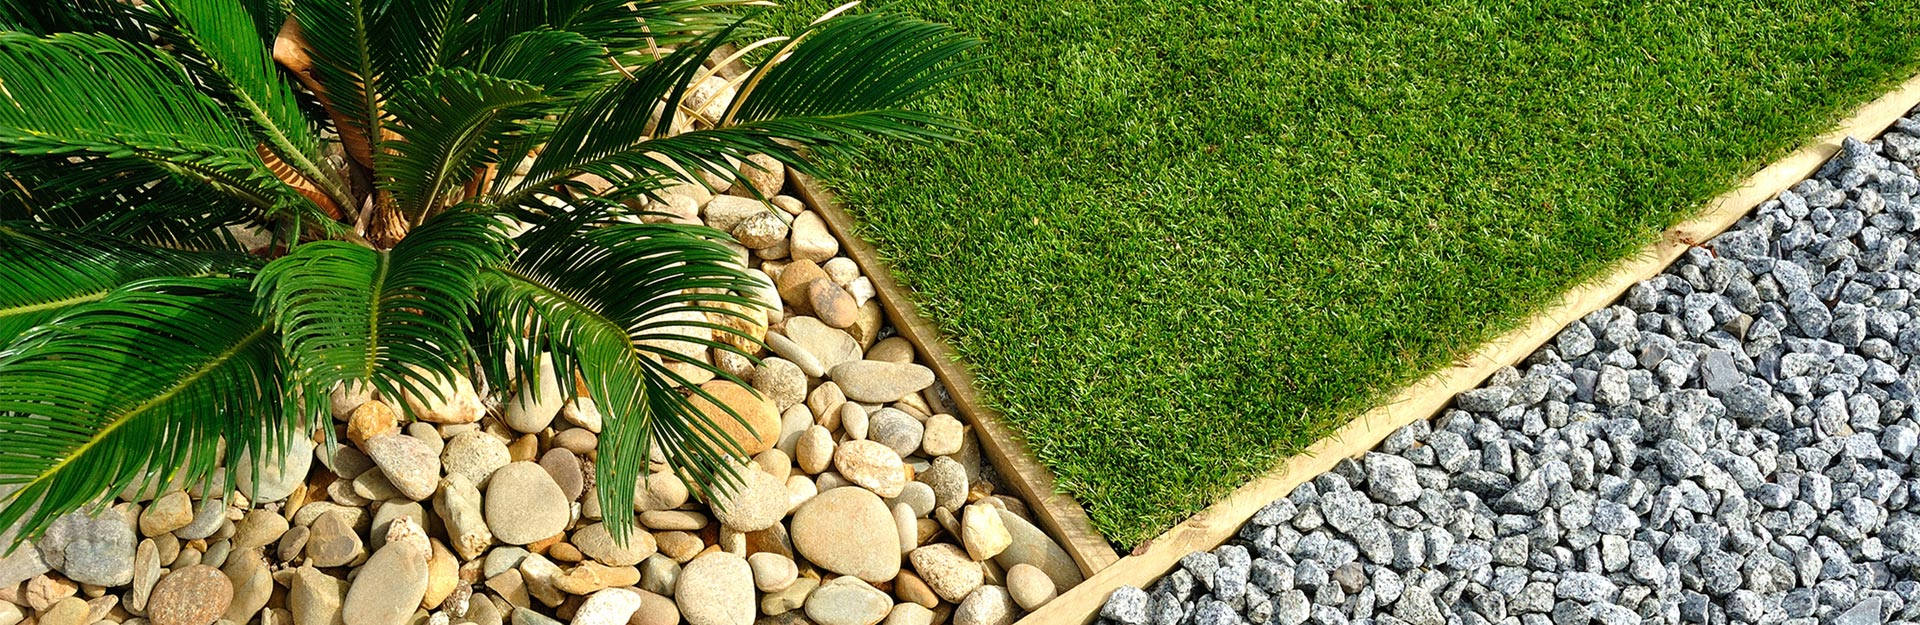 Ballarat landscaping ideas